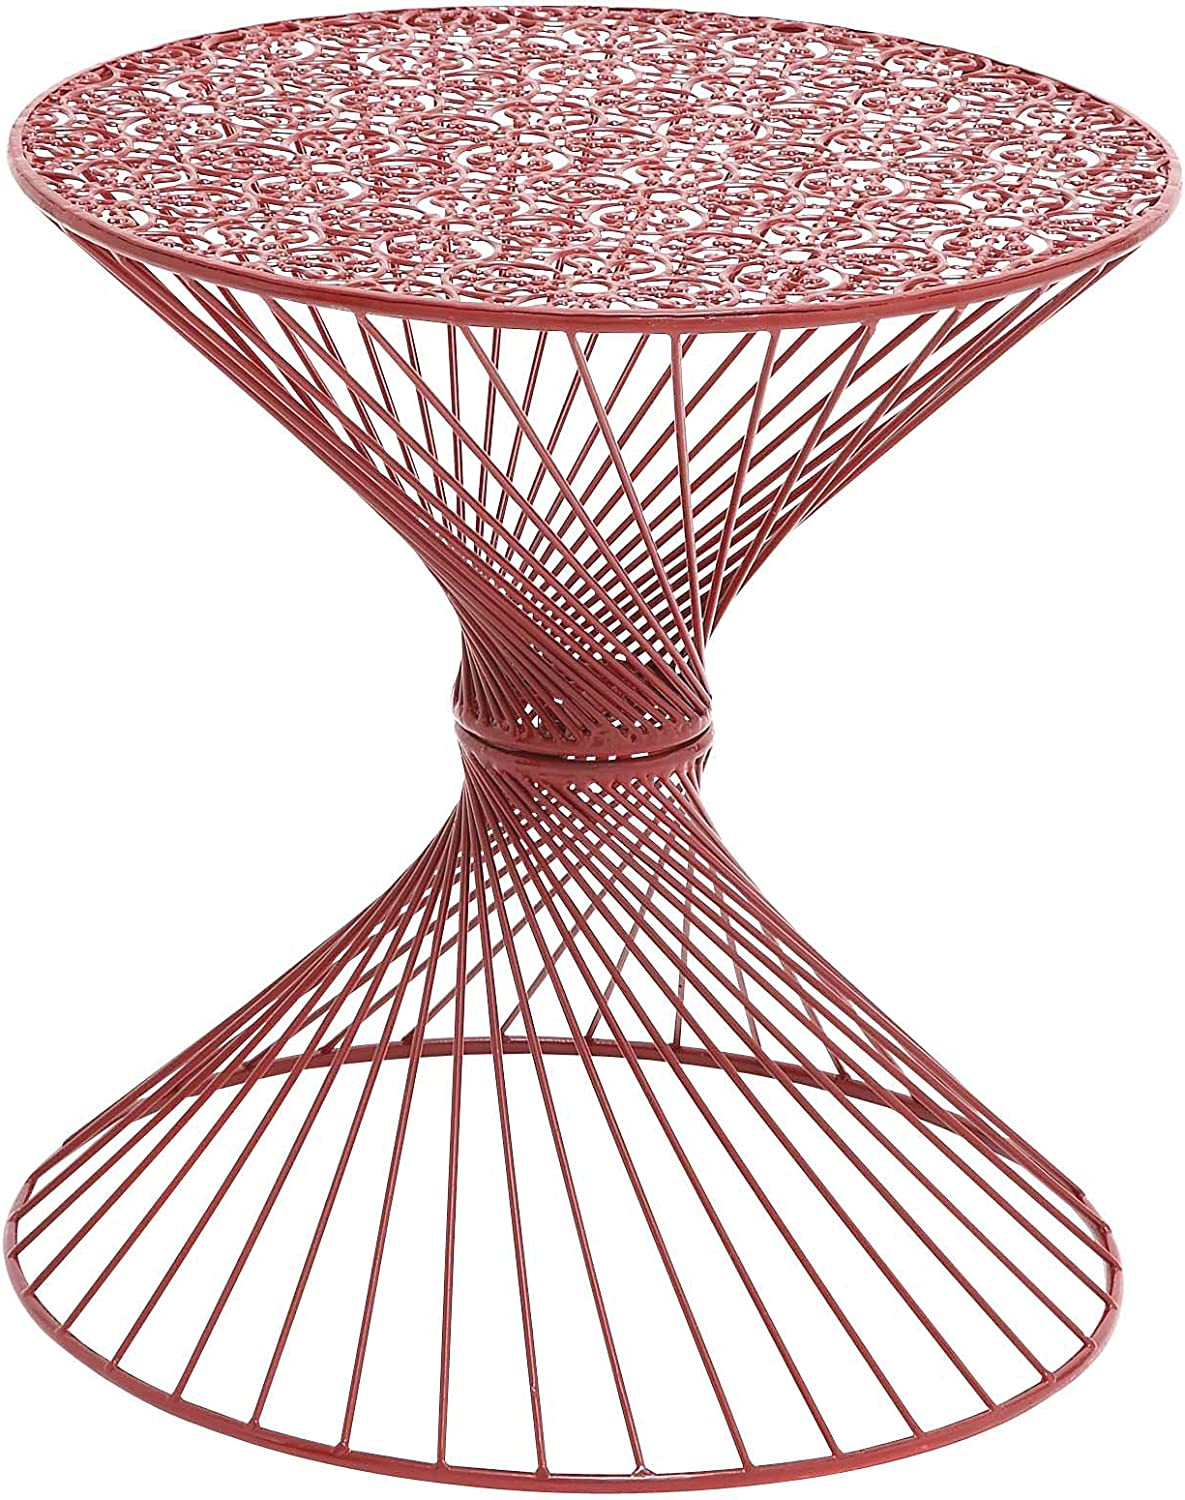 Benzara Interesting Styled Metal Accent Table, 19.2 by 19.2 by 19.2-Inch, Red